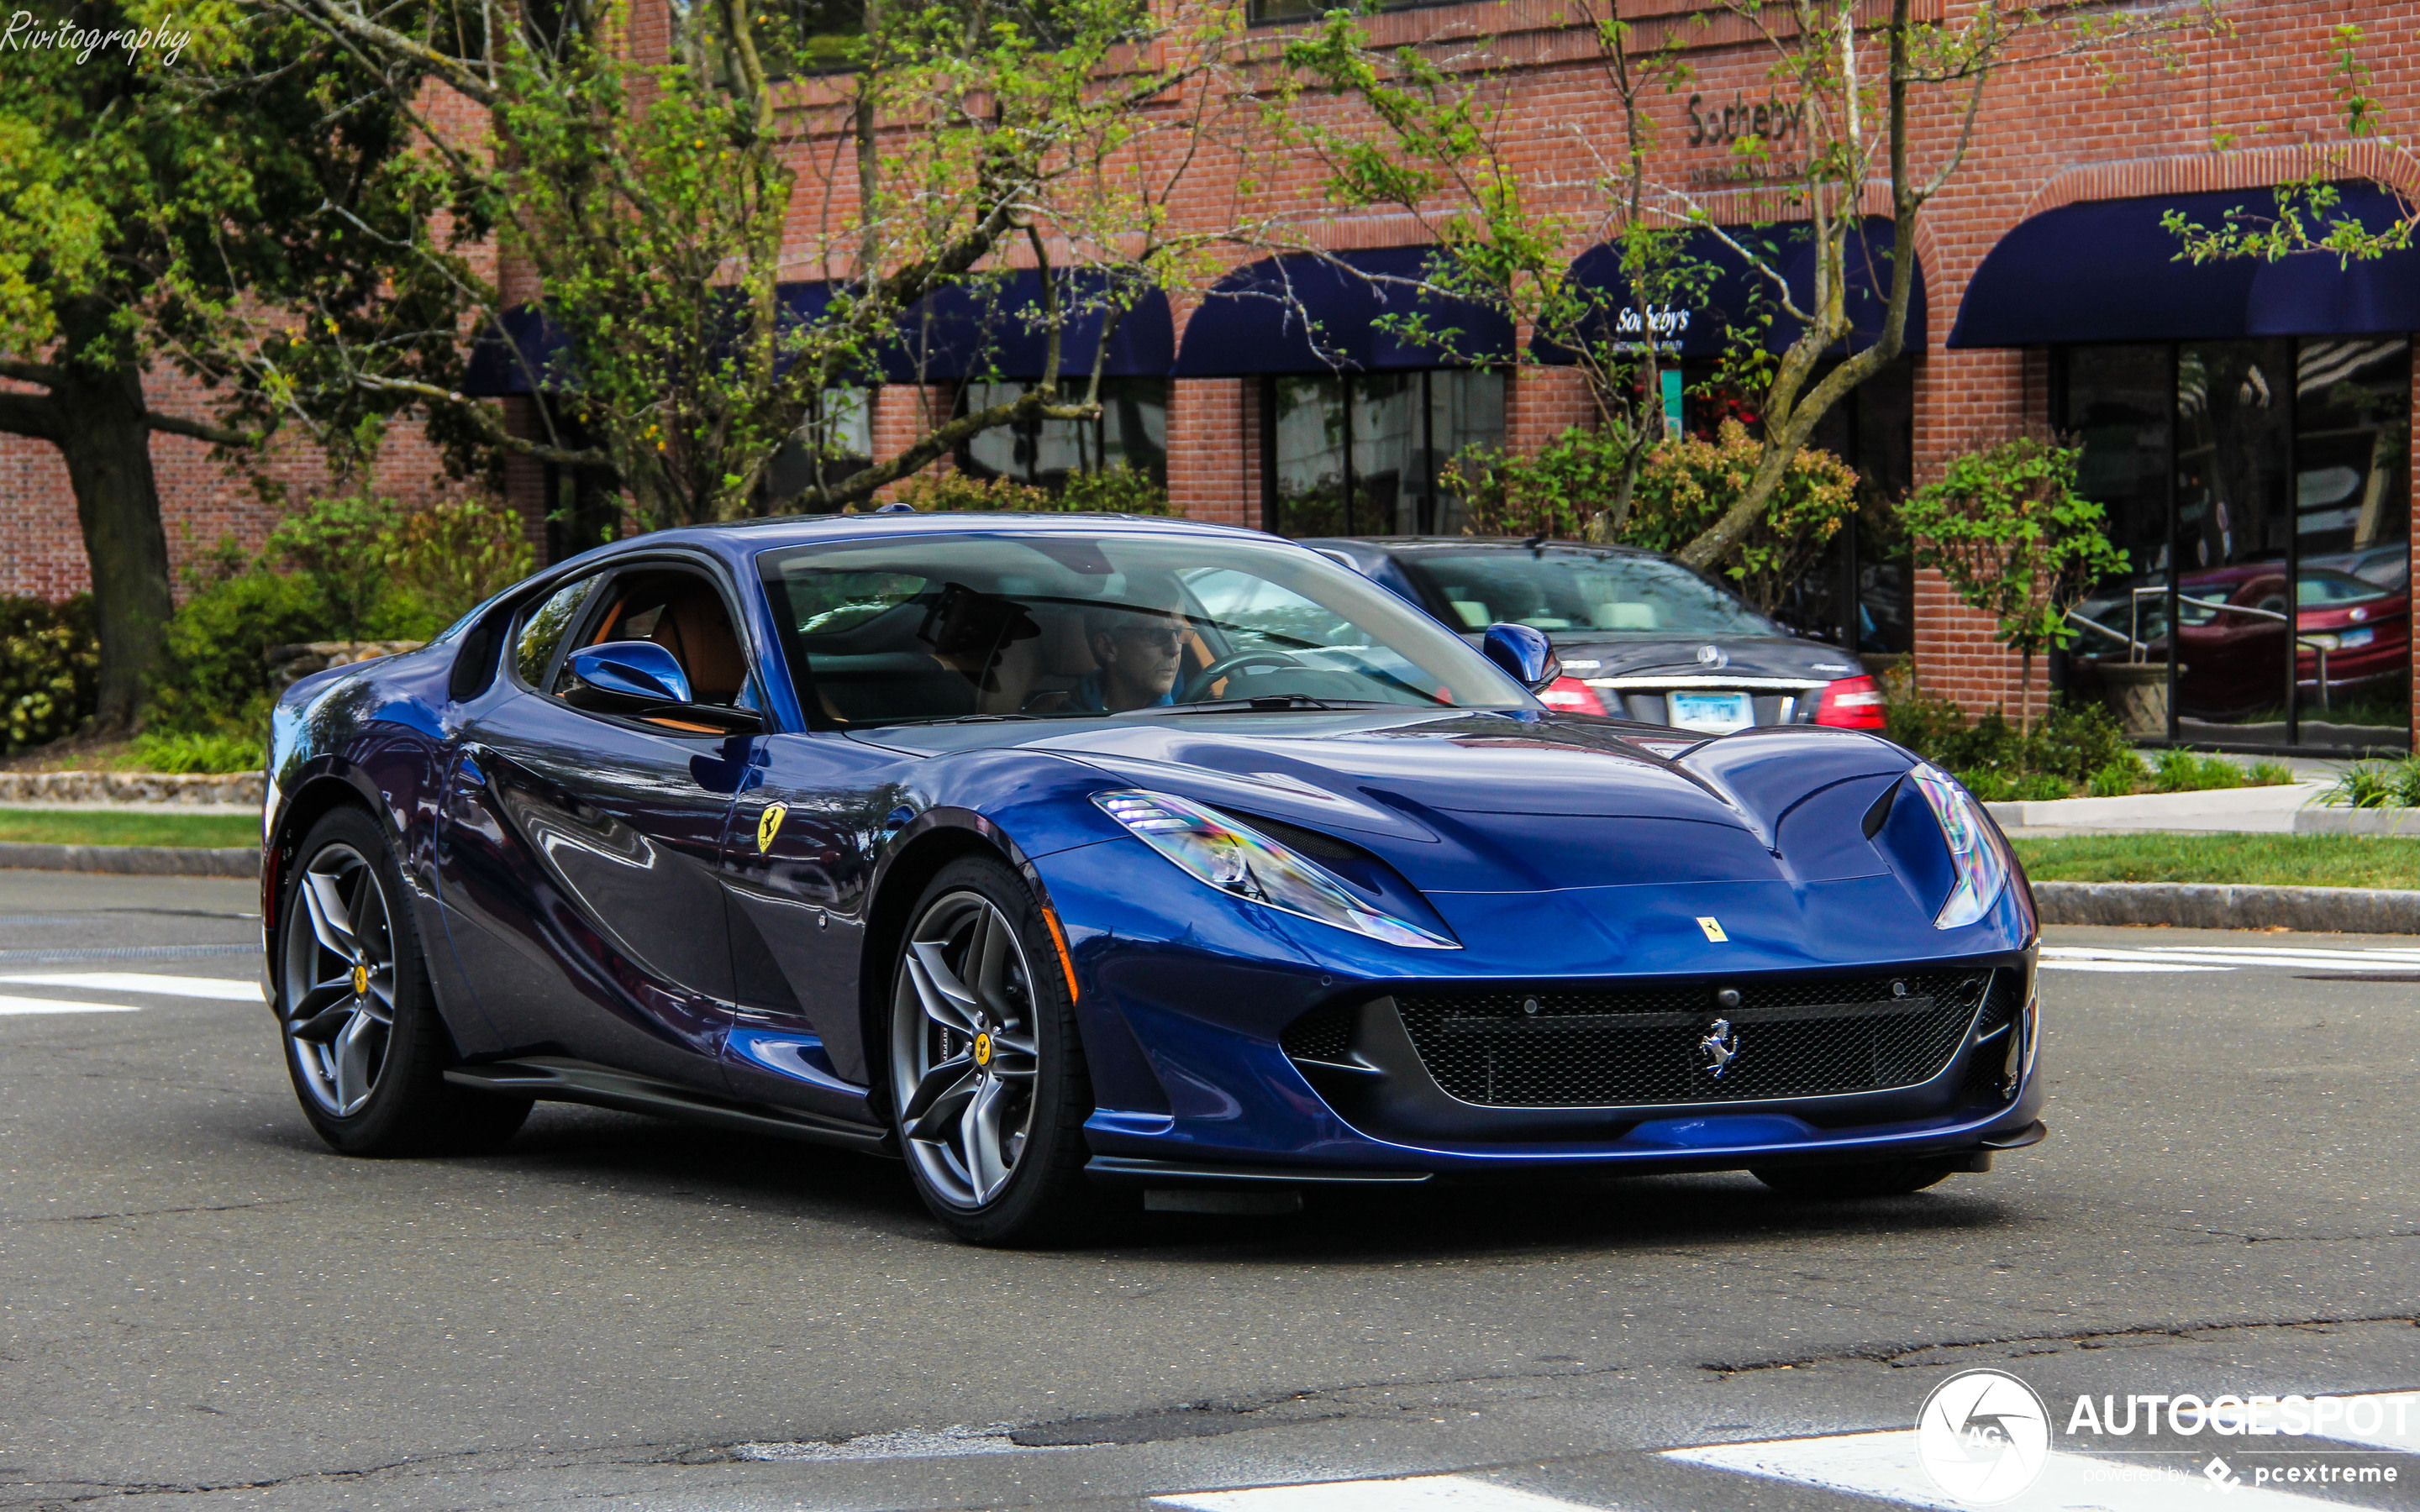 ferrari 812 superfast - 20 january 2020